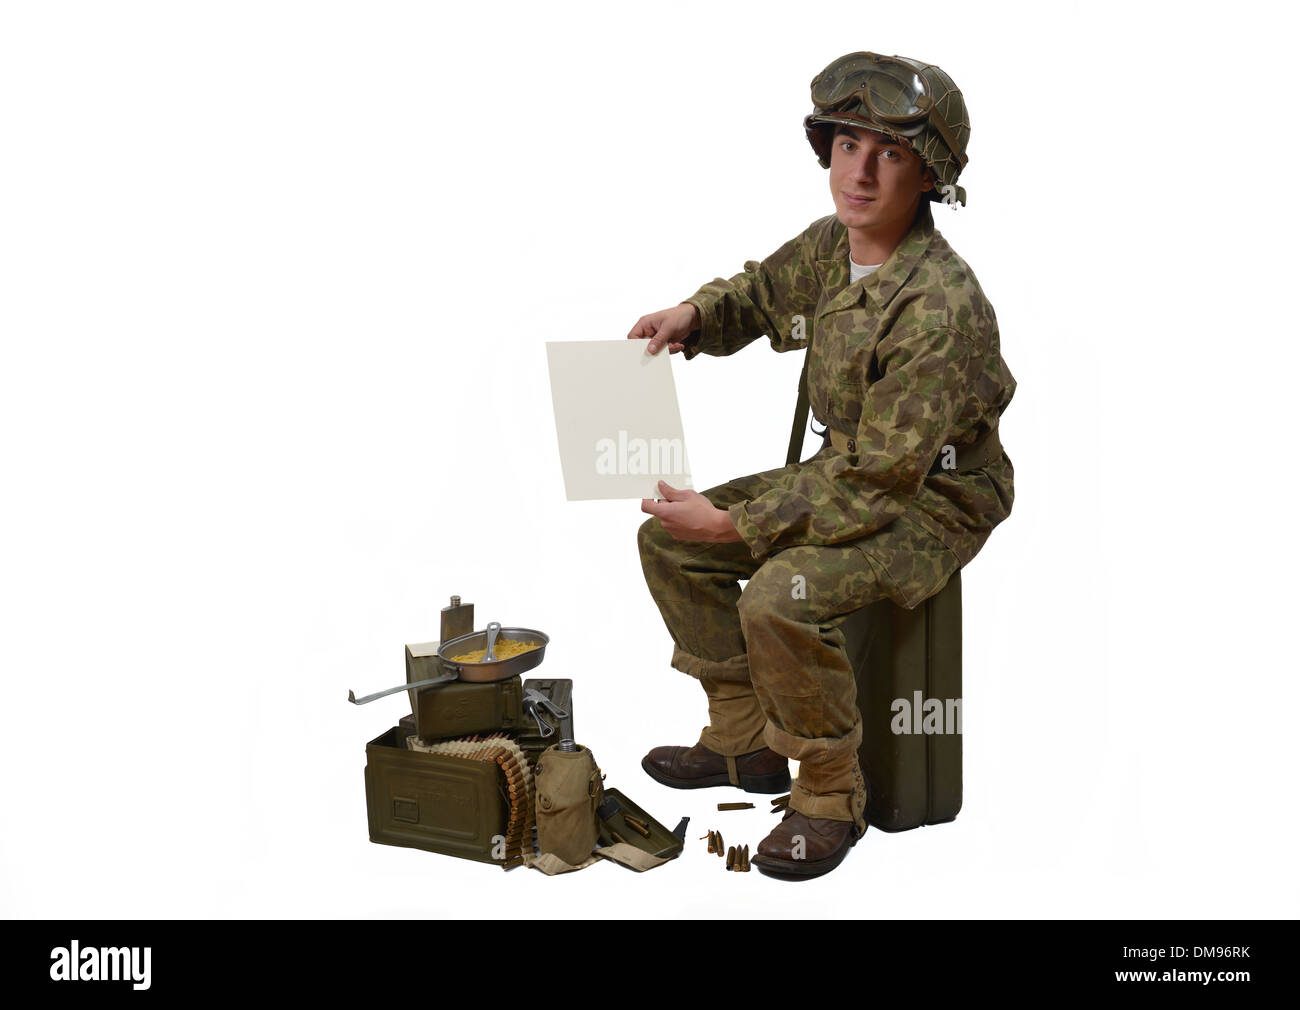 young American soldier in camouflage uniform shows a letter - Stock Image